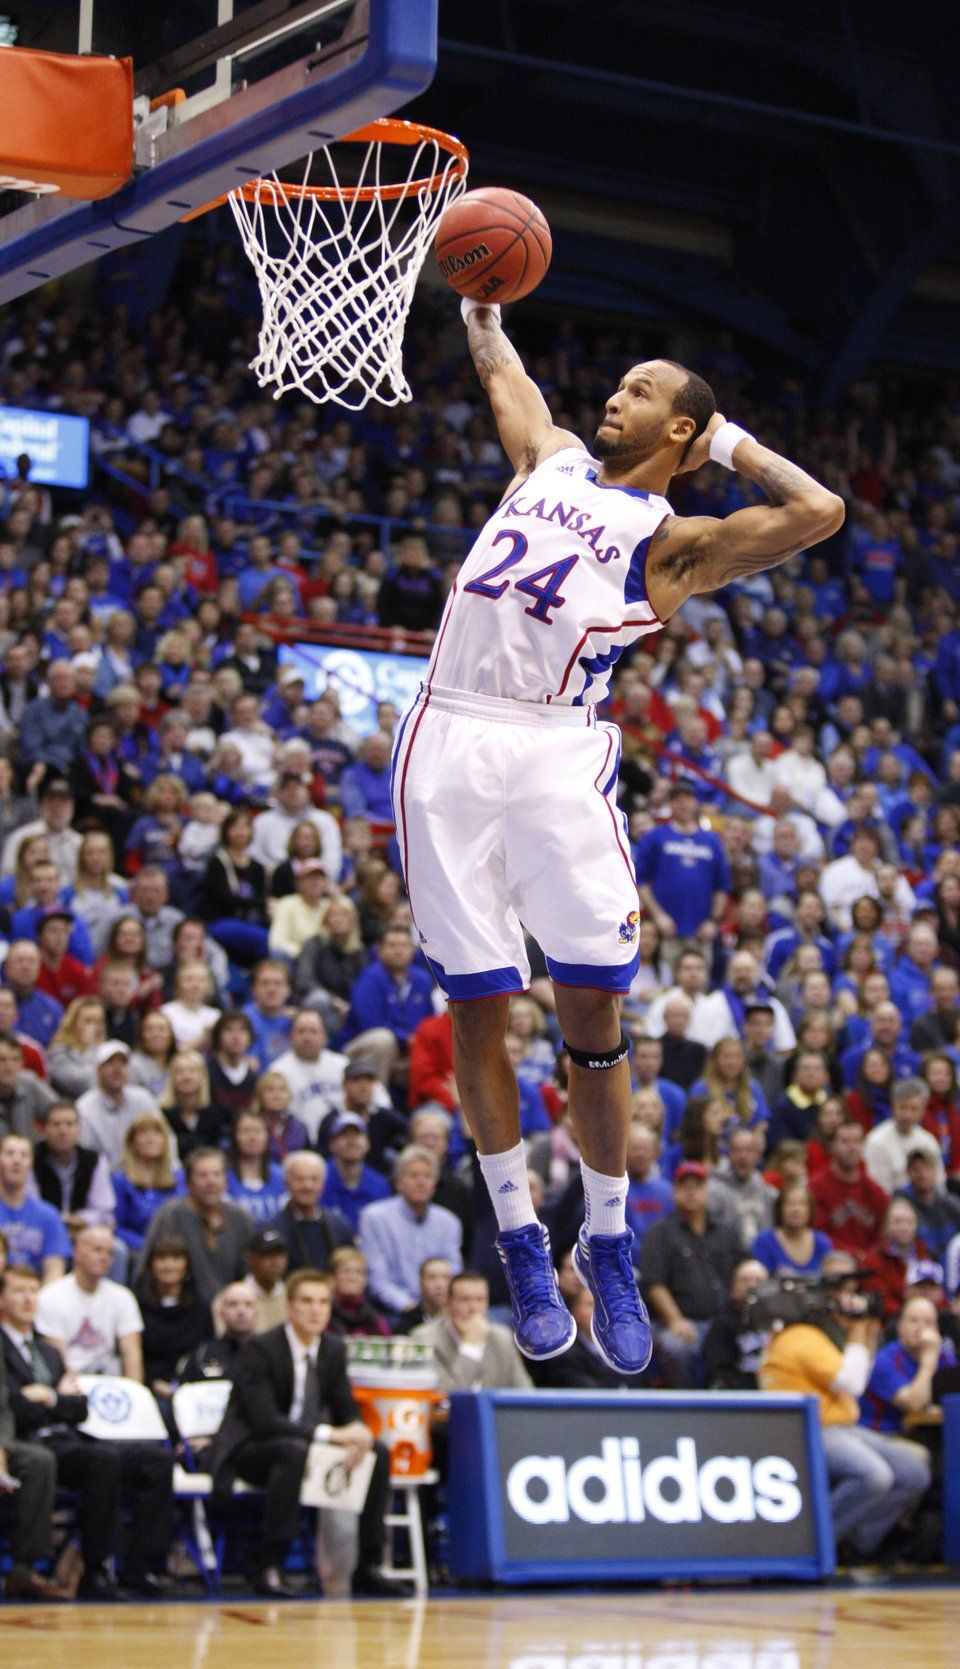 With a hand behind his head, Kansas guard Travis Releford